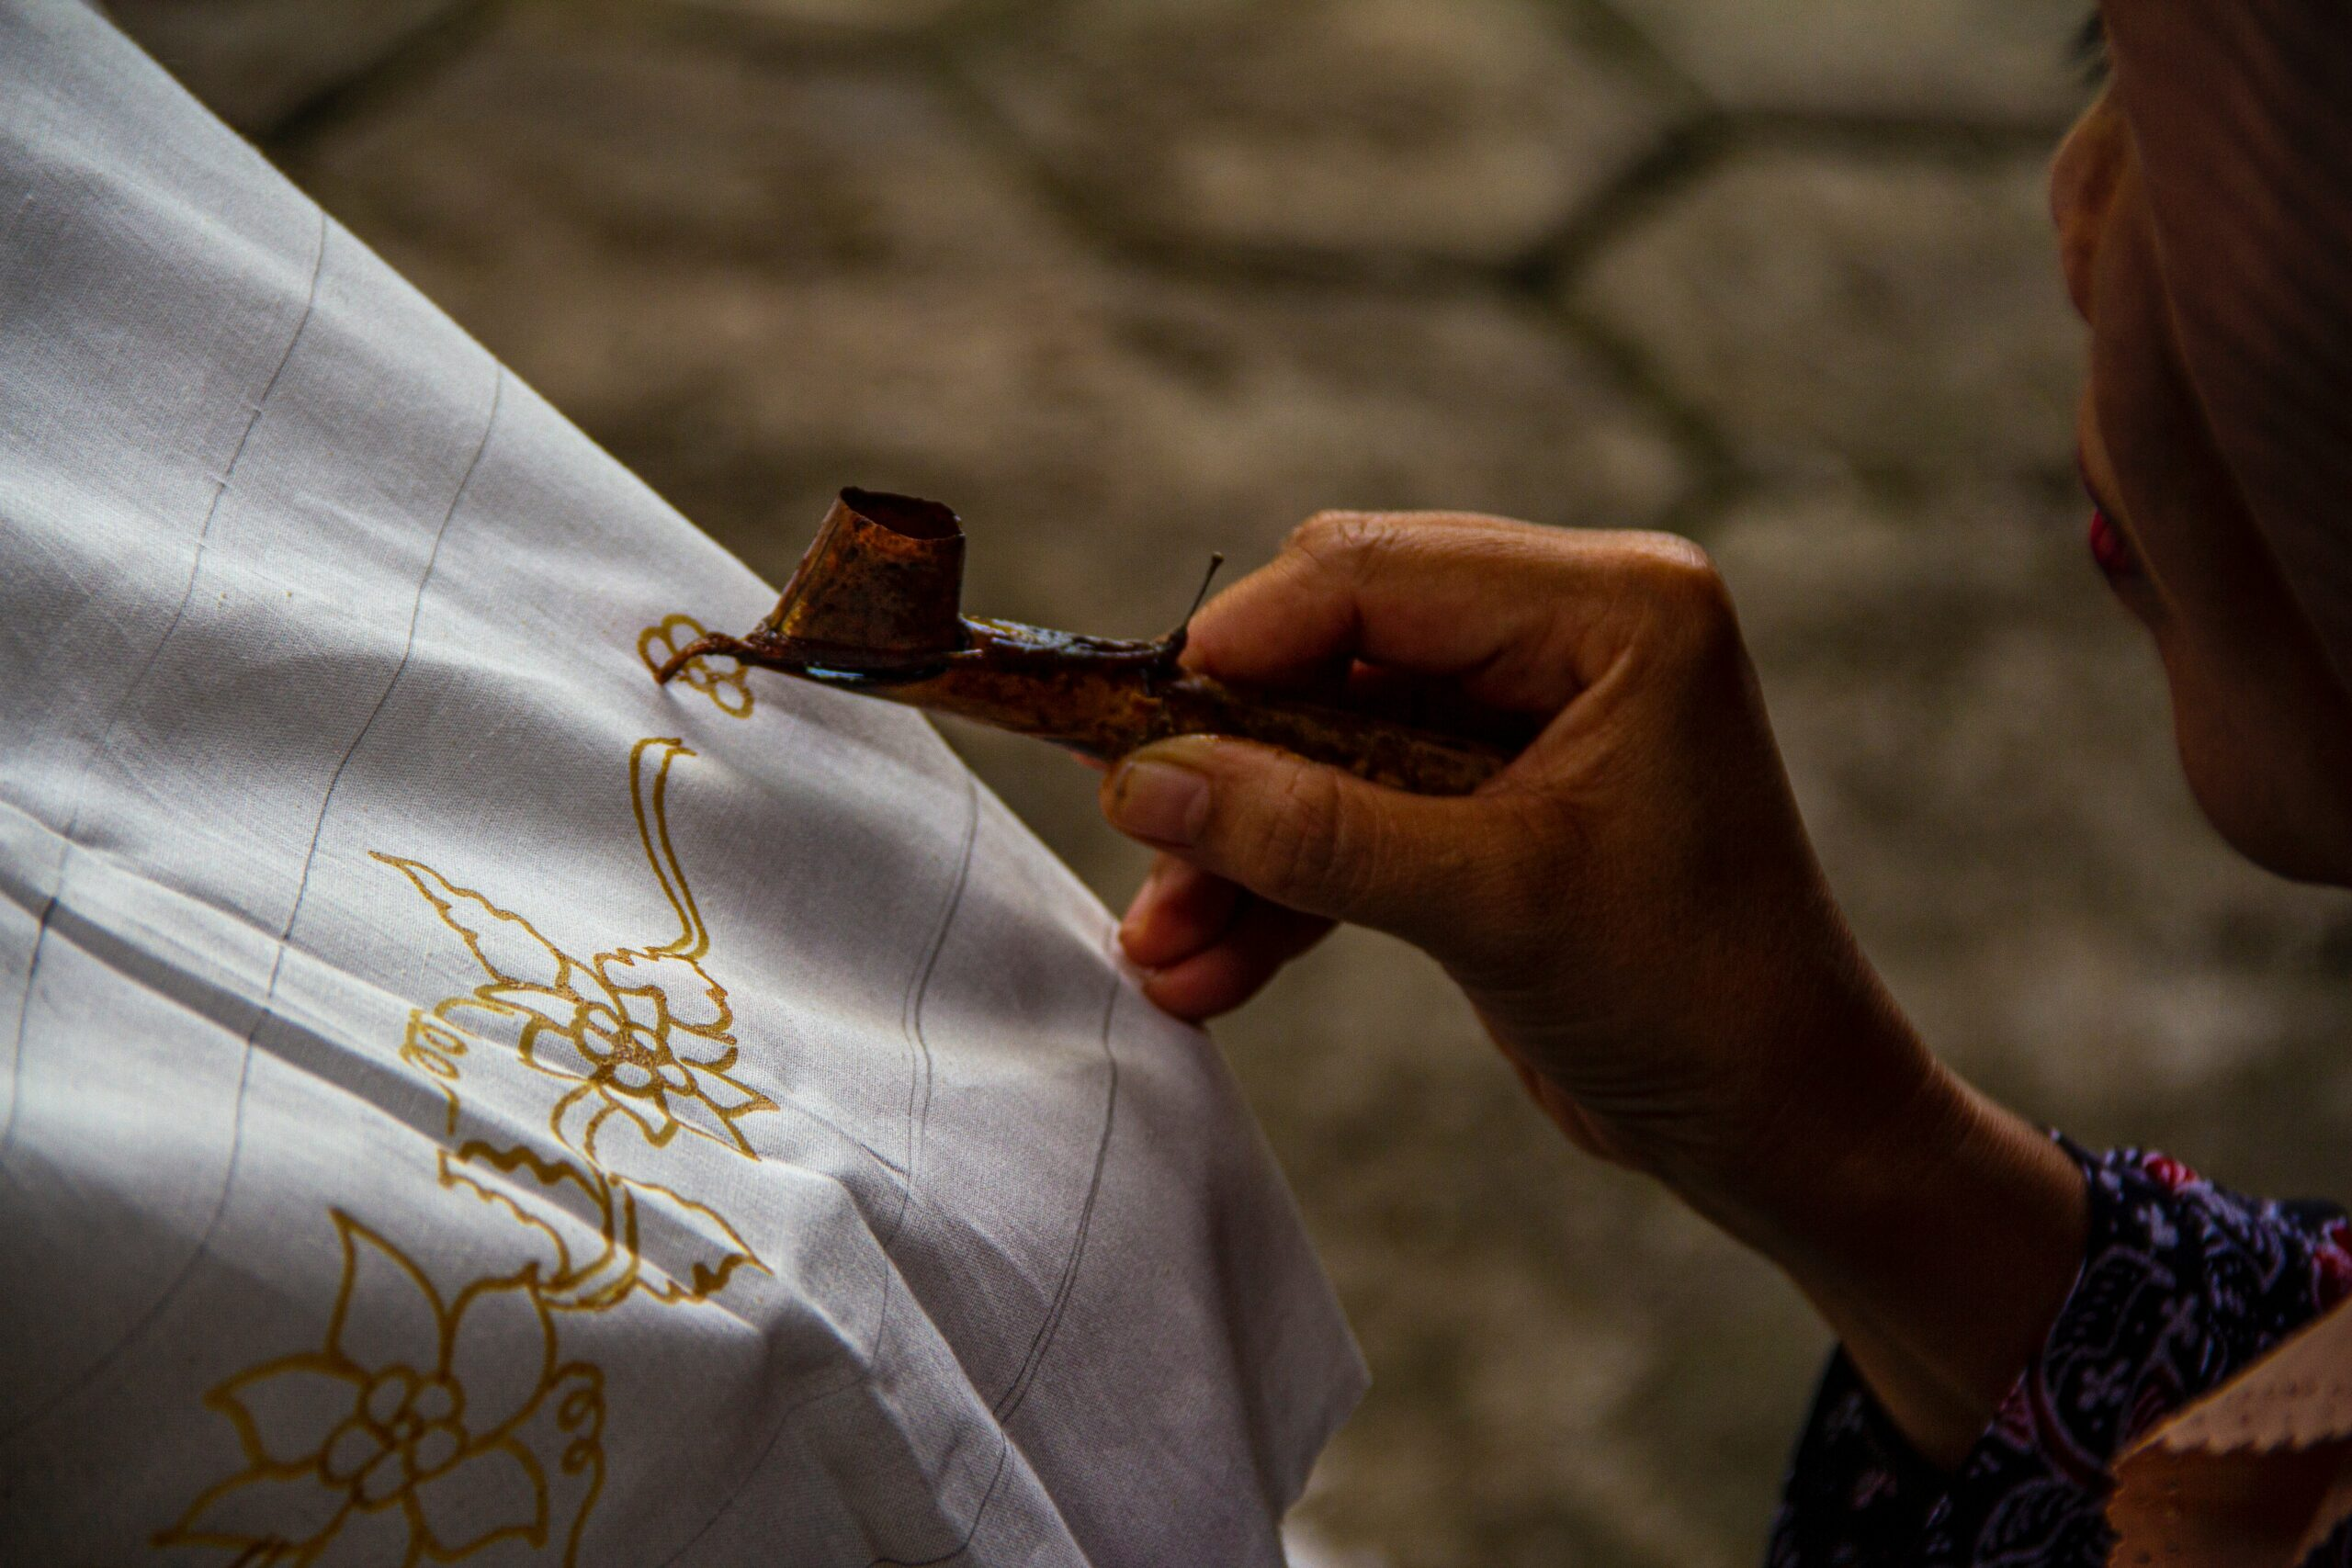 the batik process done by hand